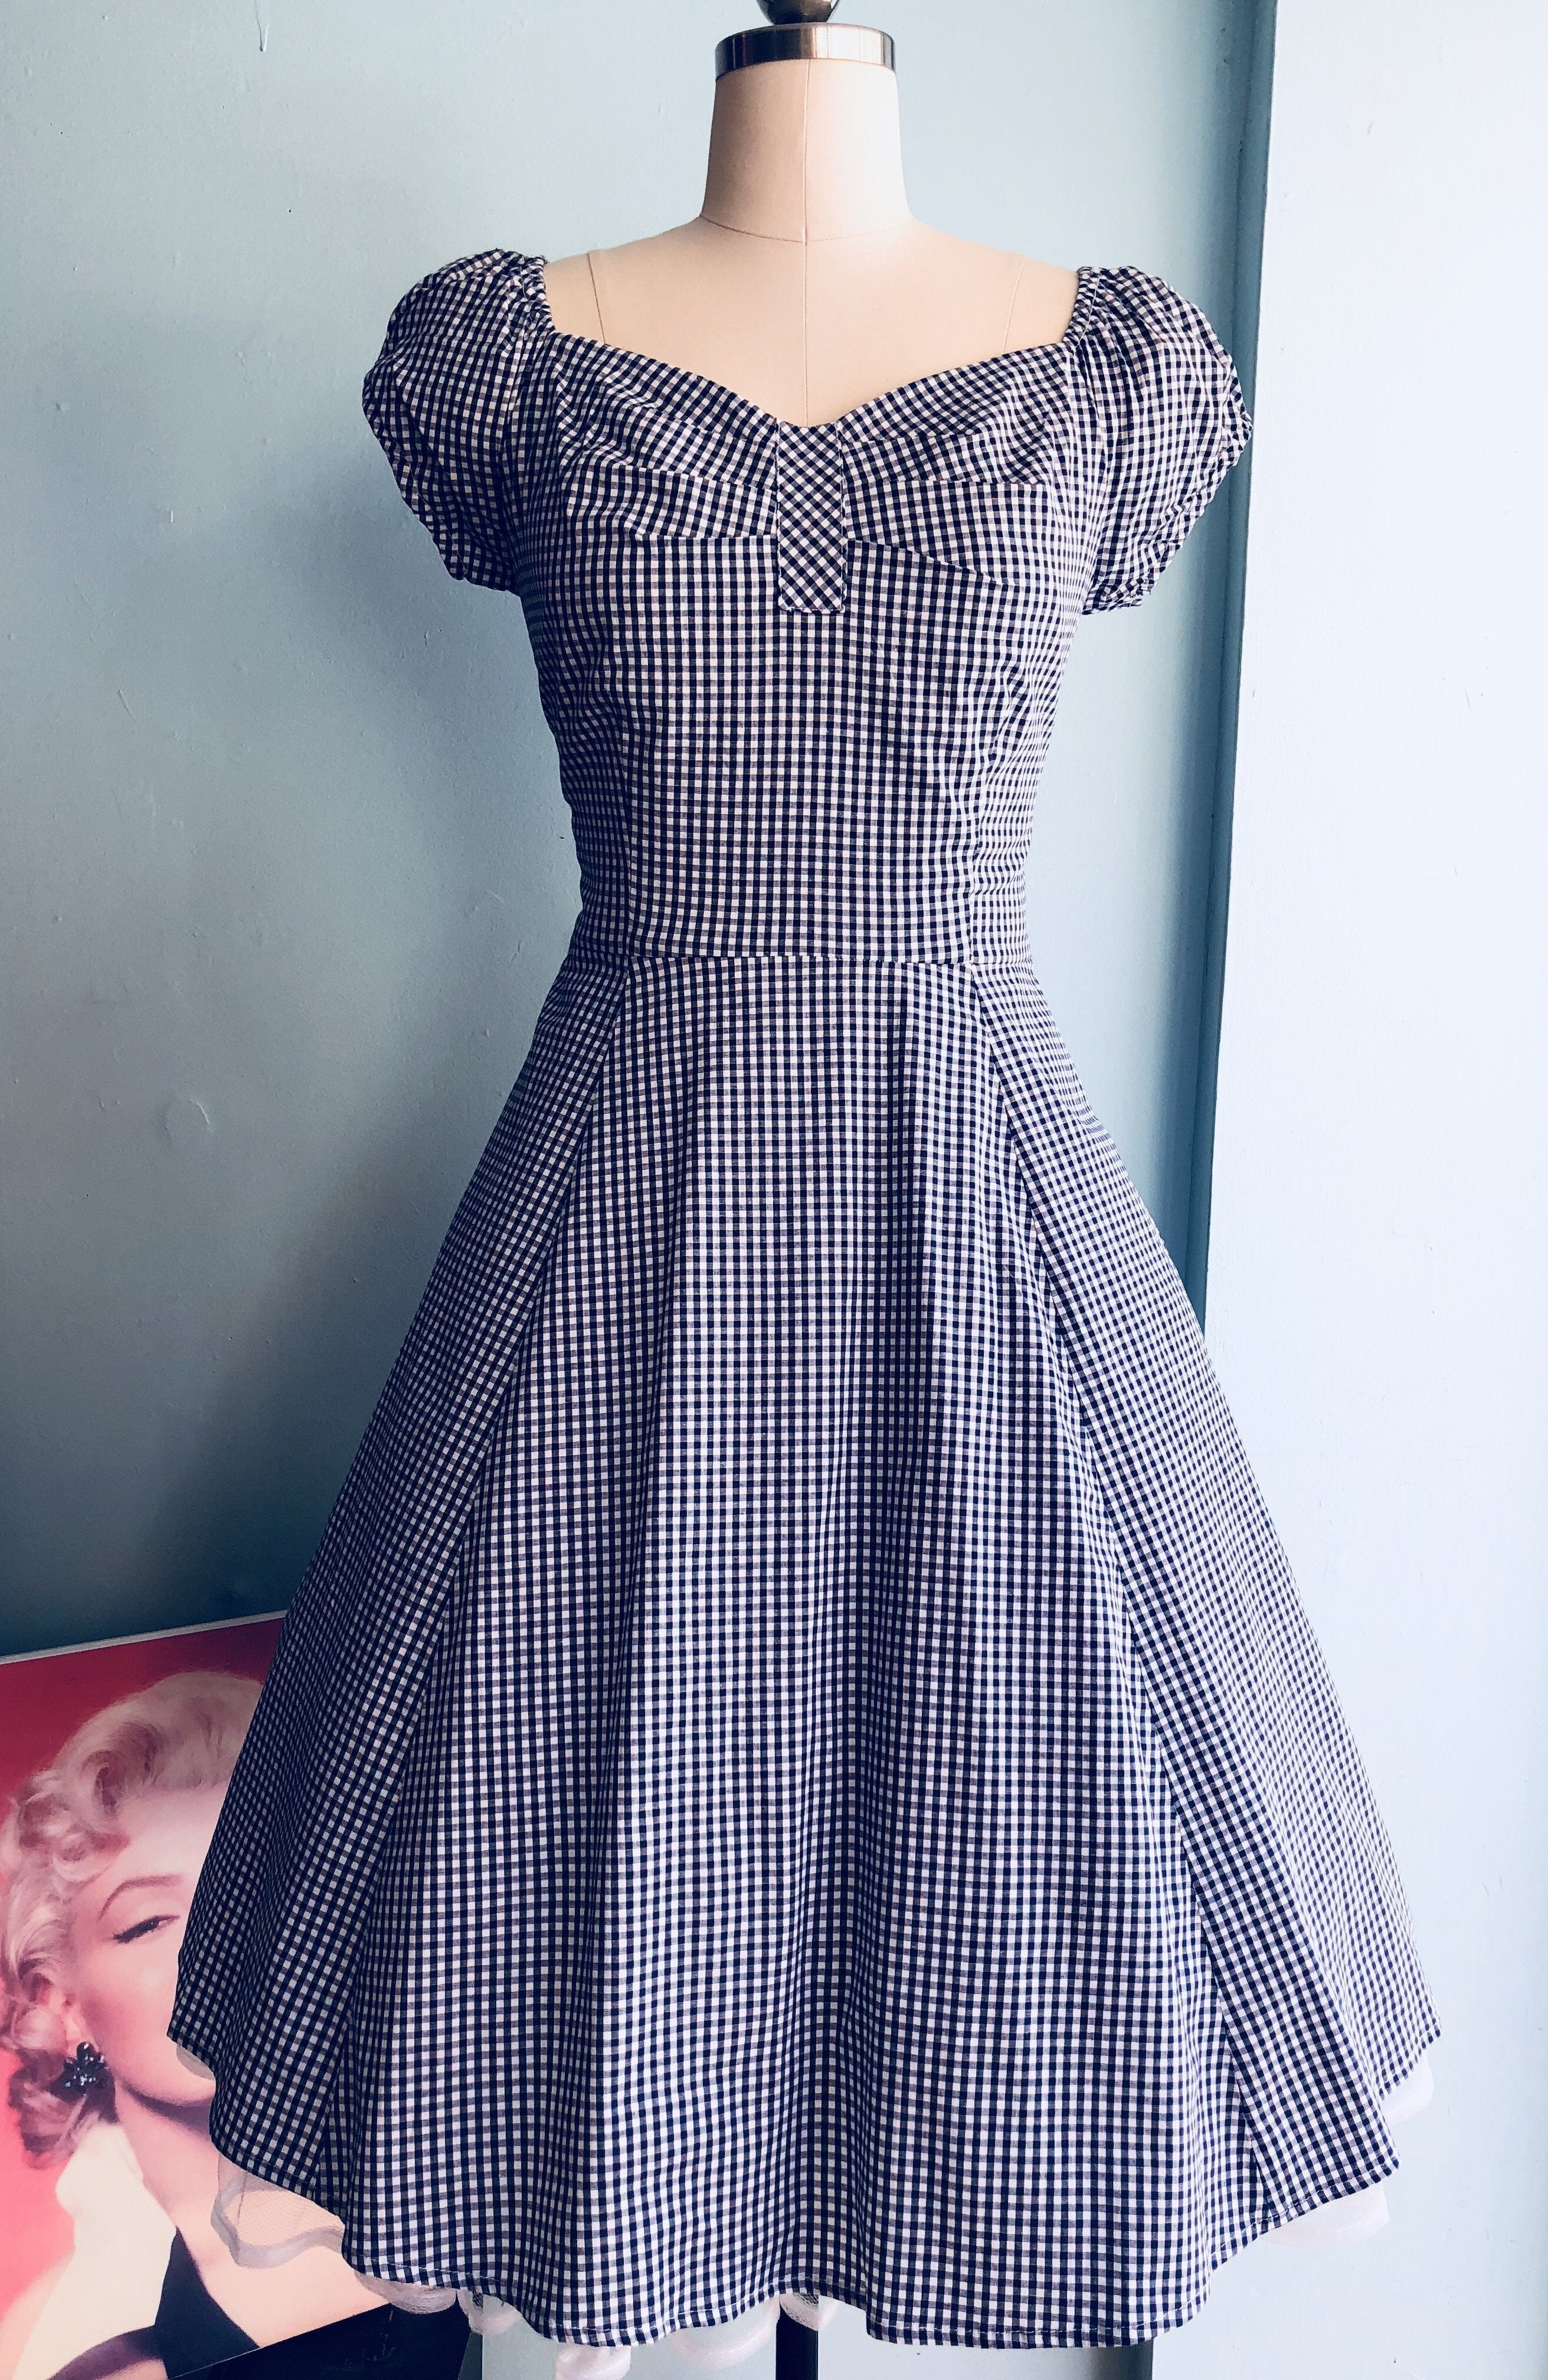 Gingham Cap Sleeve Dress in Navy by Eva Rose